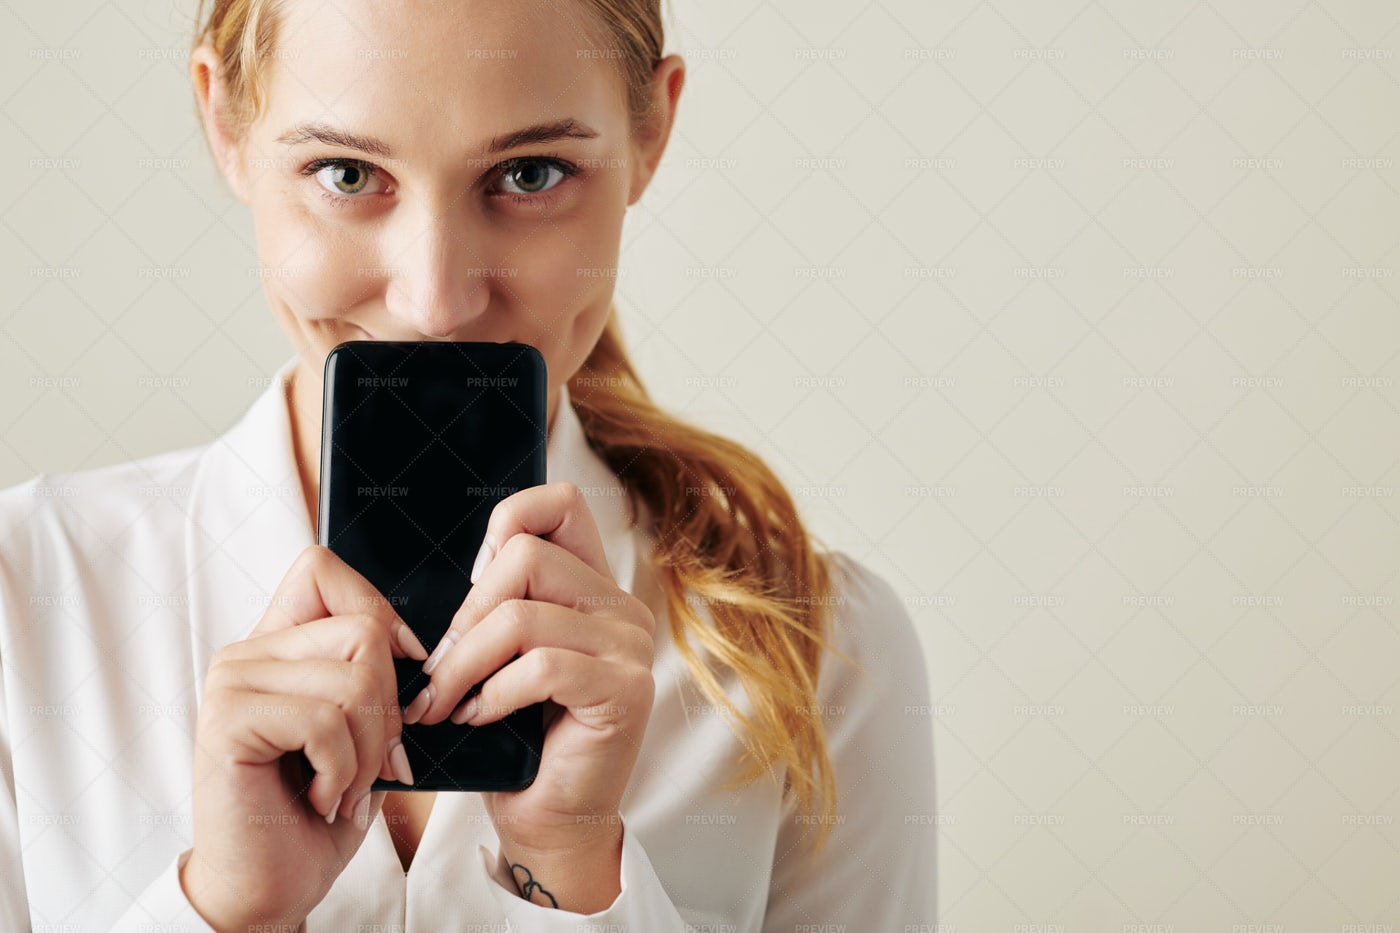 Excited Woman With Smartphone: Stock Photos